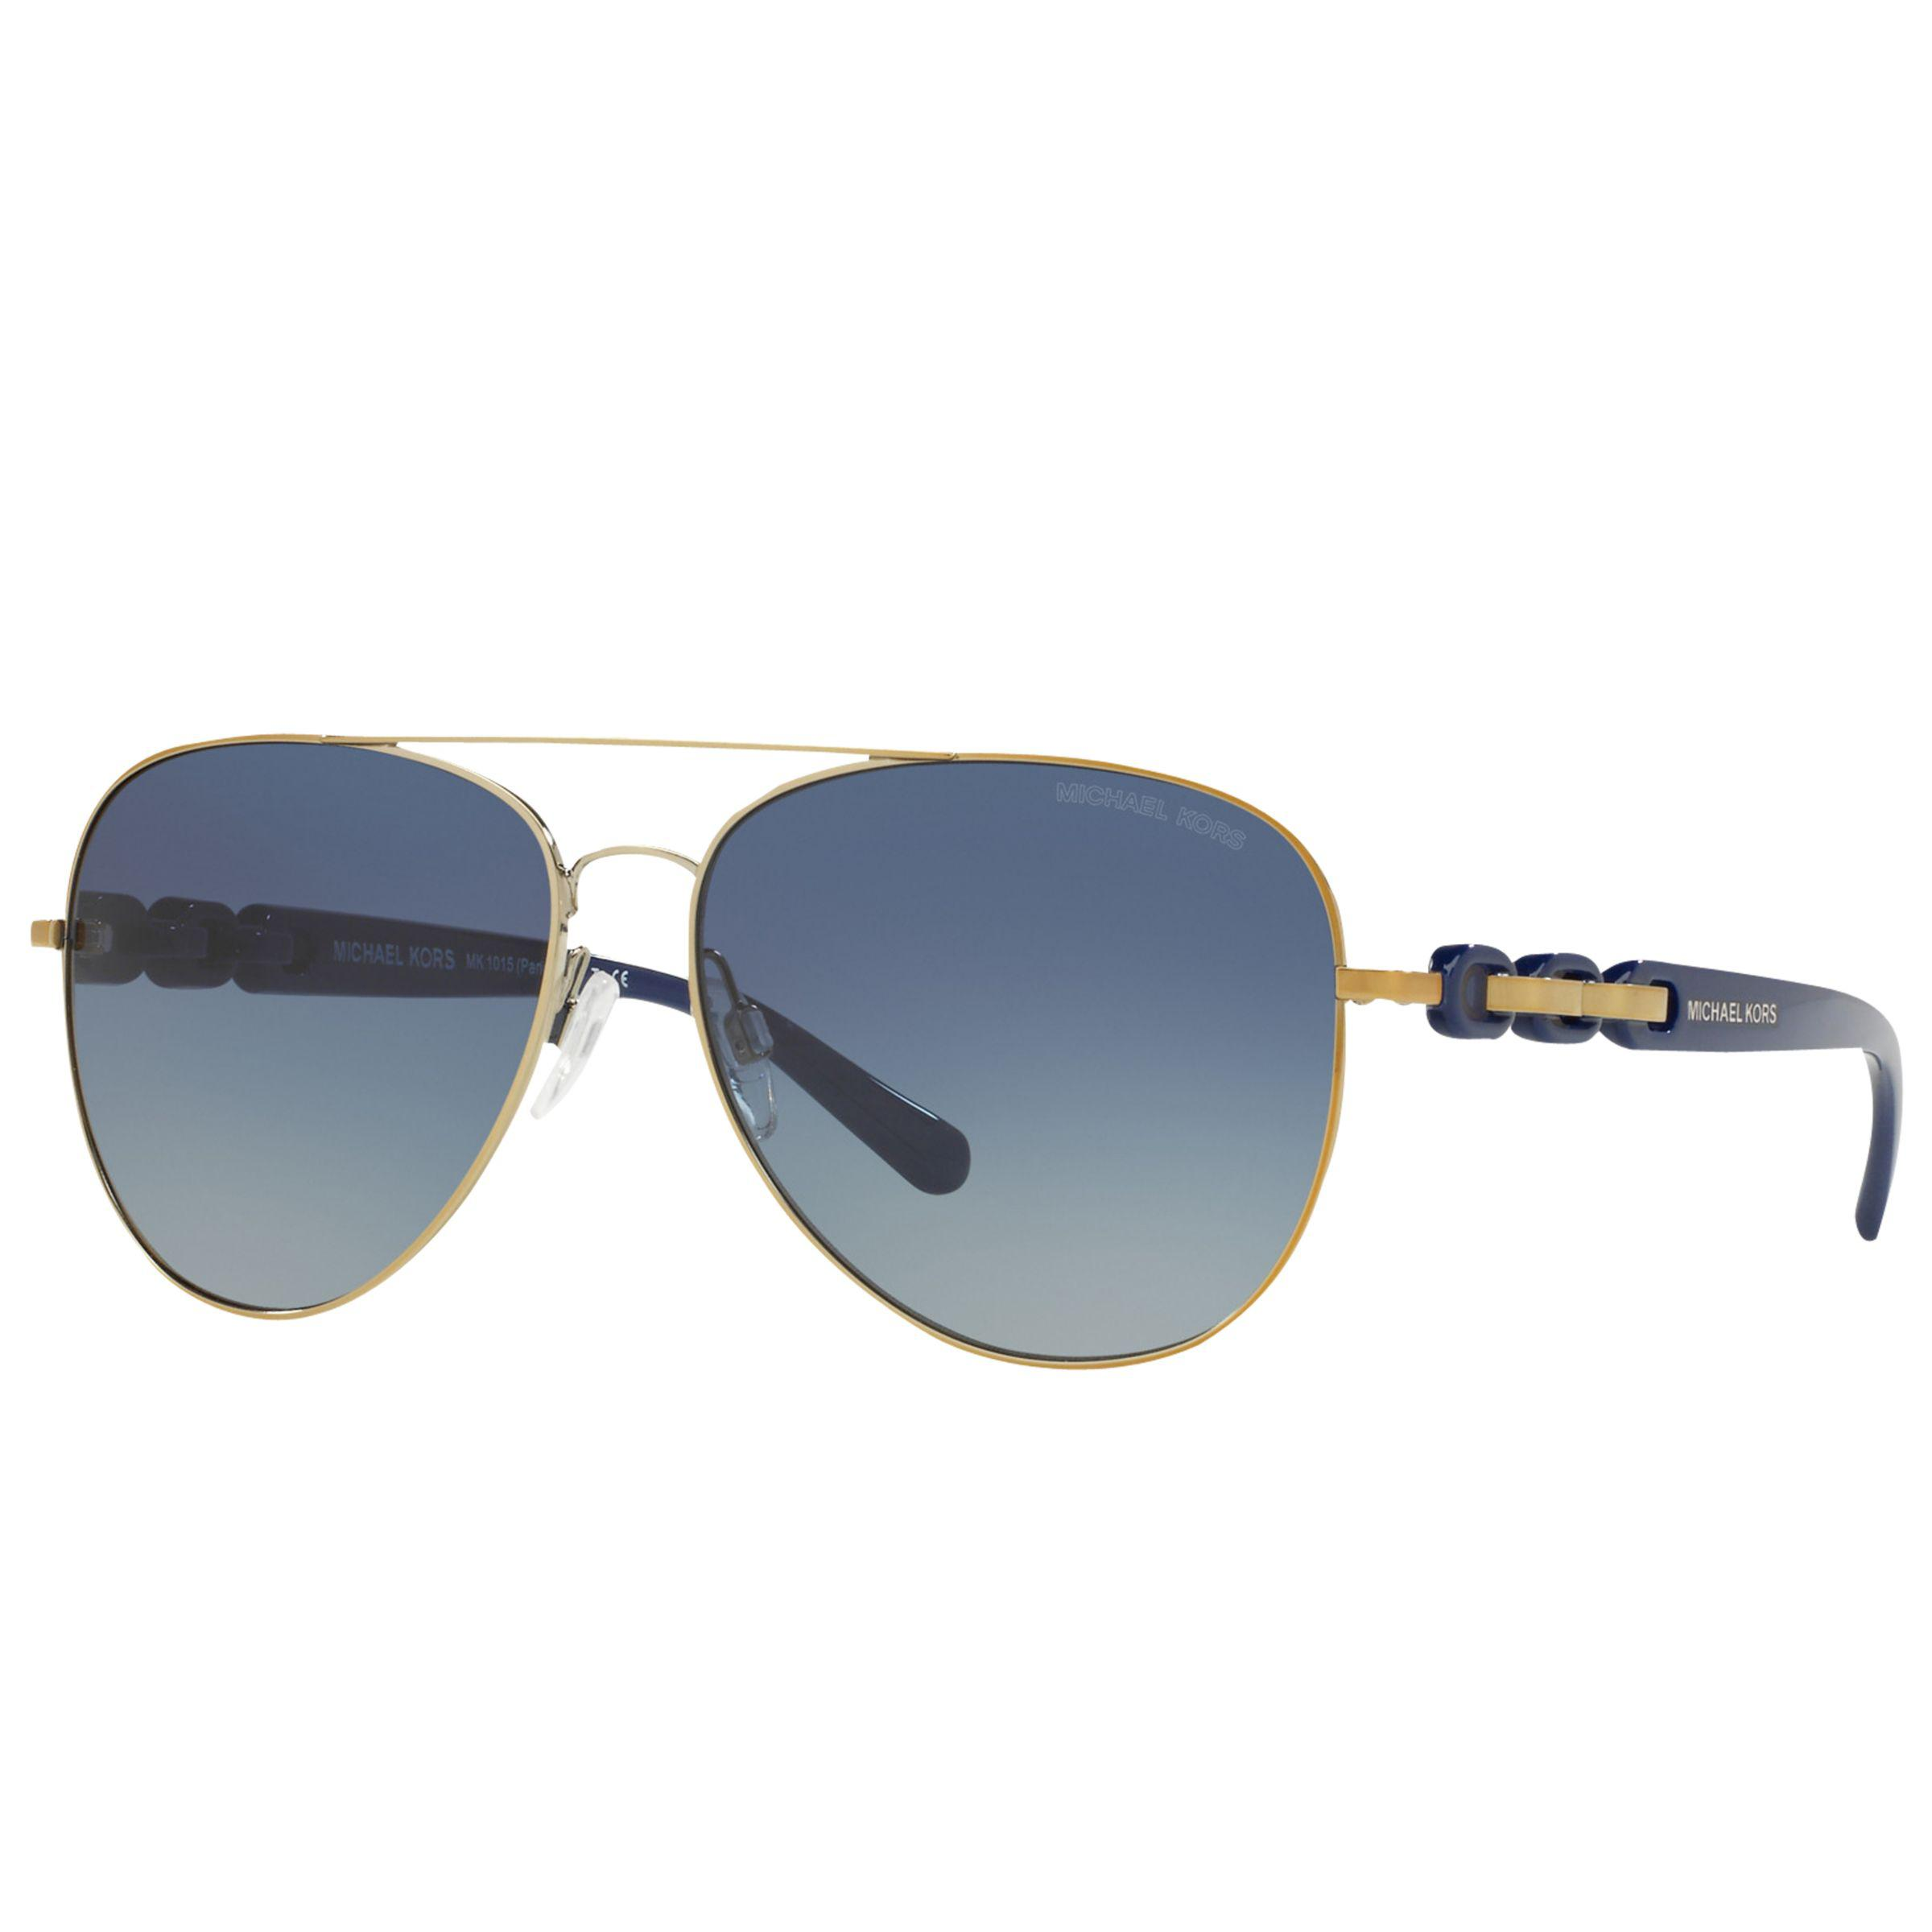 44c52eb831a Michael Kors Mk1015 Pandora I Aviator Sunglasses in Blue - Lyst